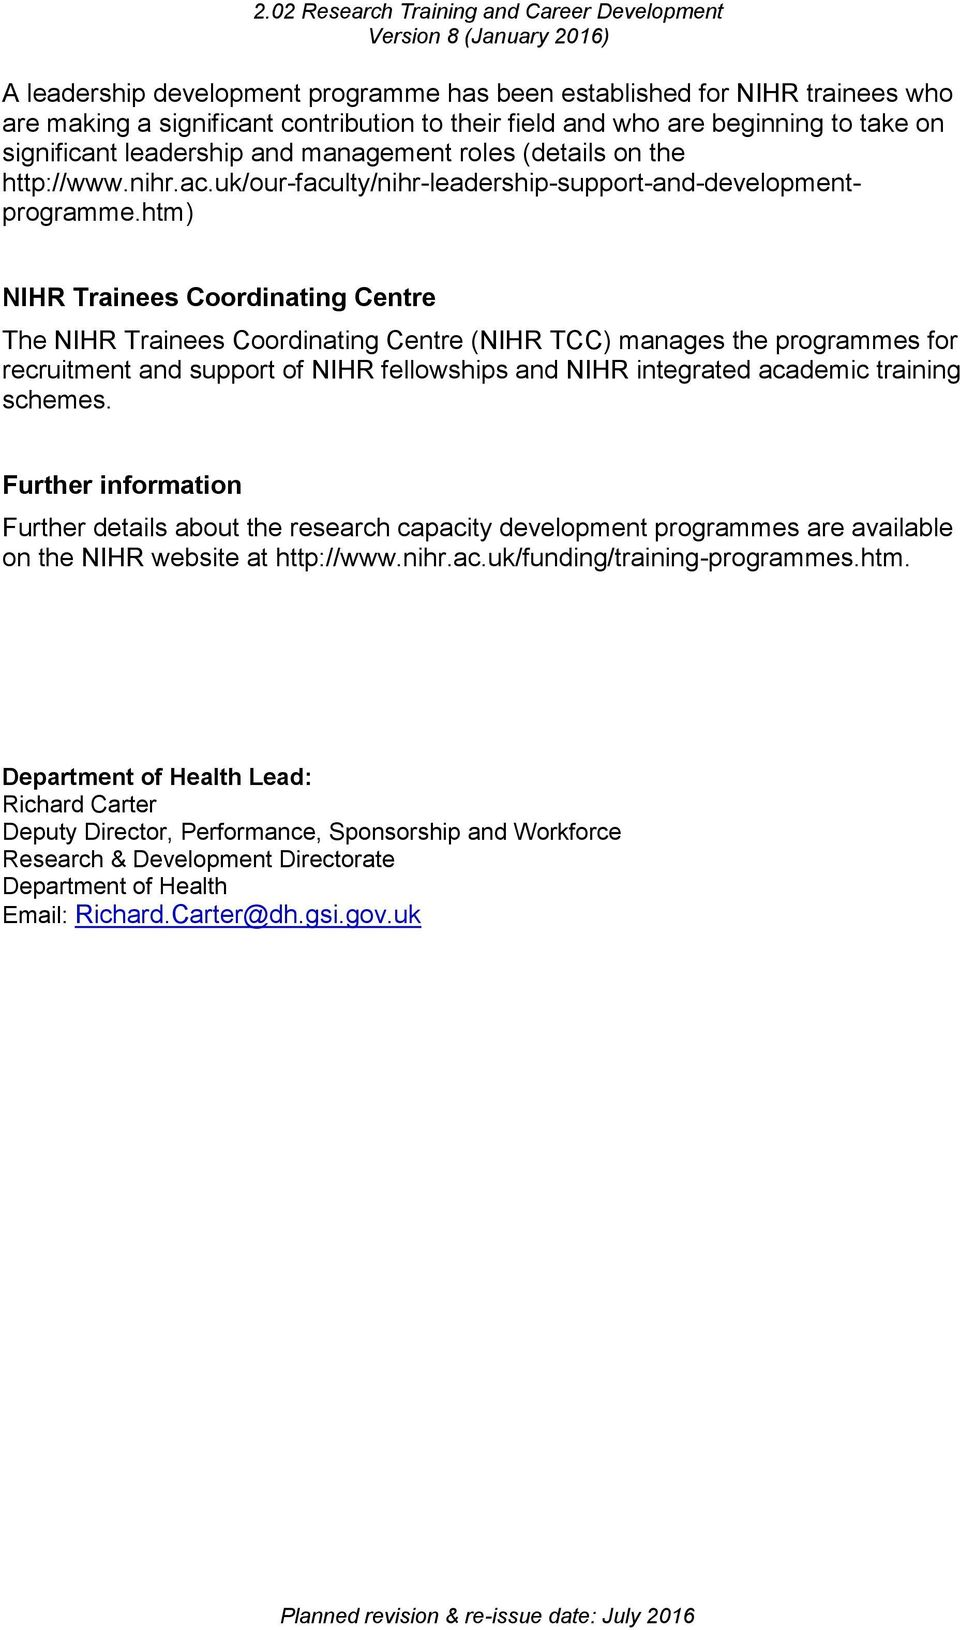 htm) NIHR Trainees Coordinating Centre The NIHR Trainees Coordinating Centre (NIHR TCC) manages the programmes for recruitment and support of NIHR fellowships and NIHR integrated academic training